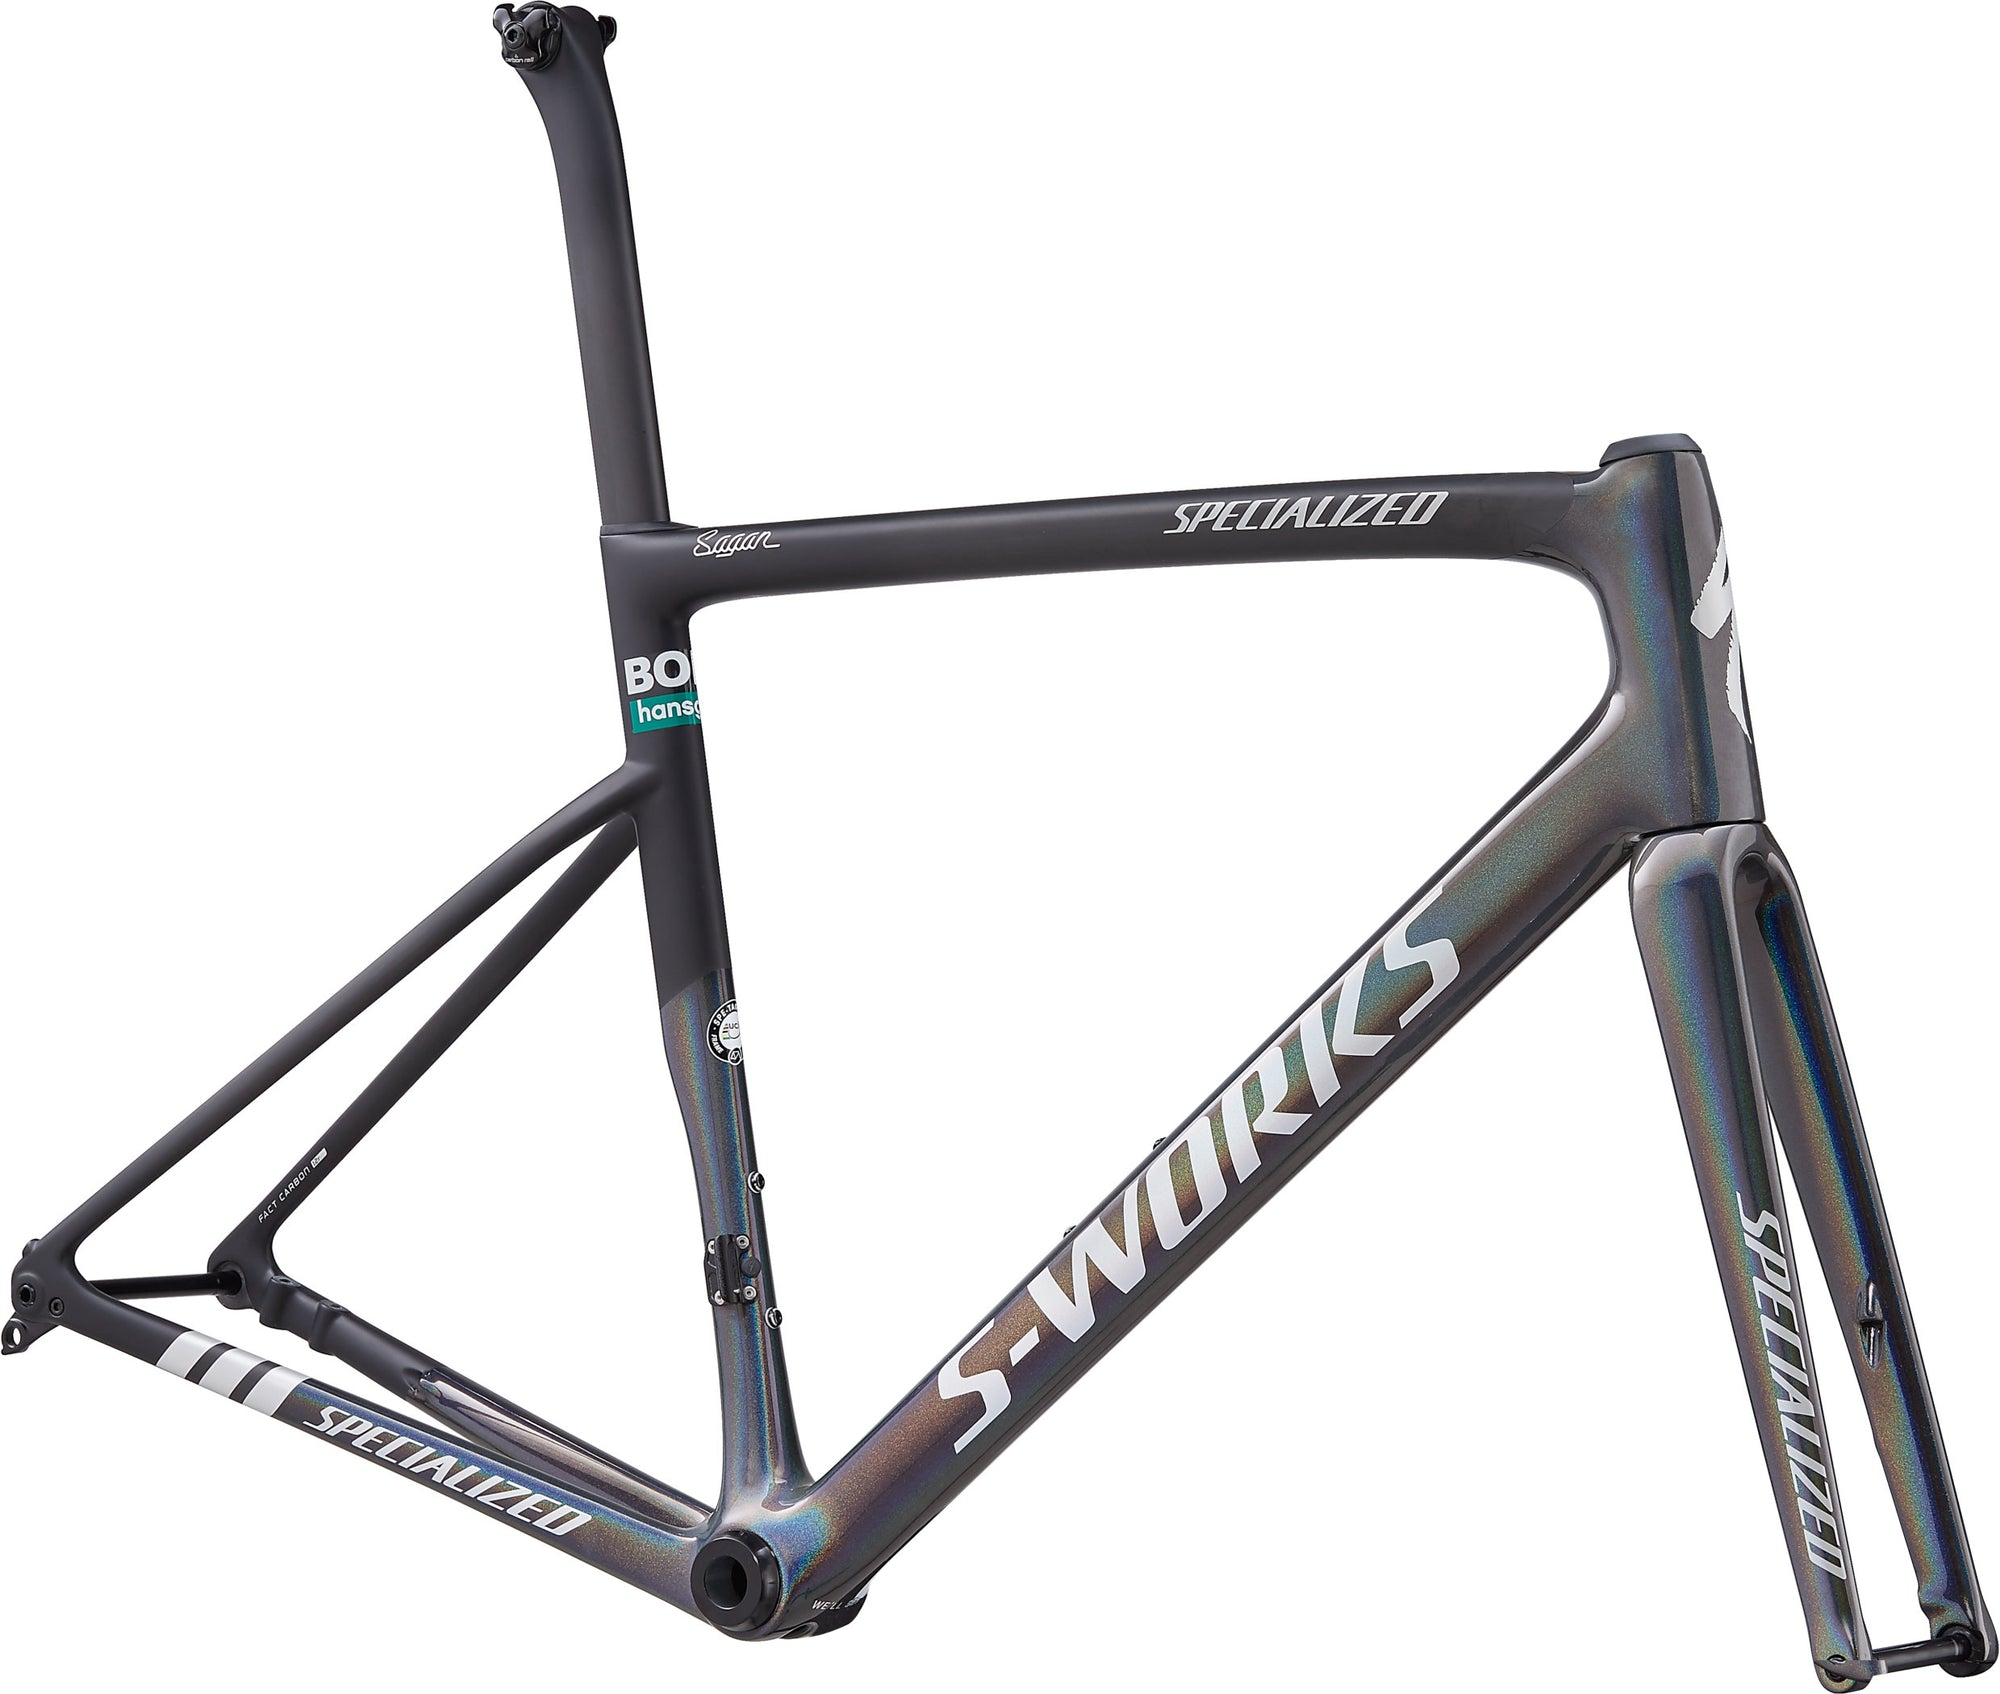 S-Works Tarmac SL6 Disc Frameset - Sagan Collection Mirror LTD